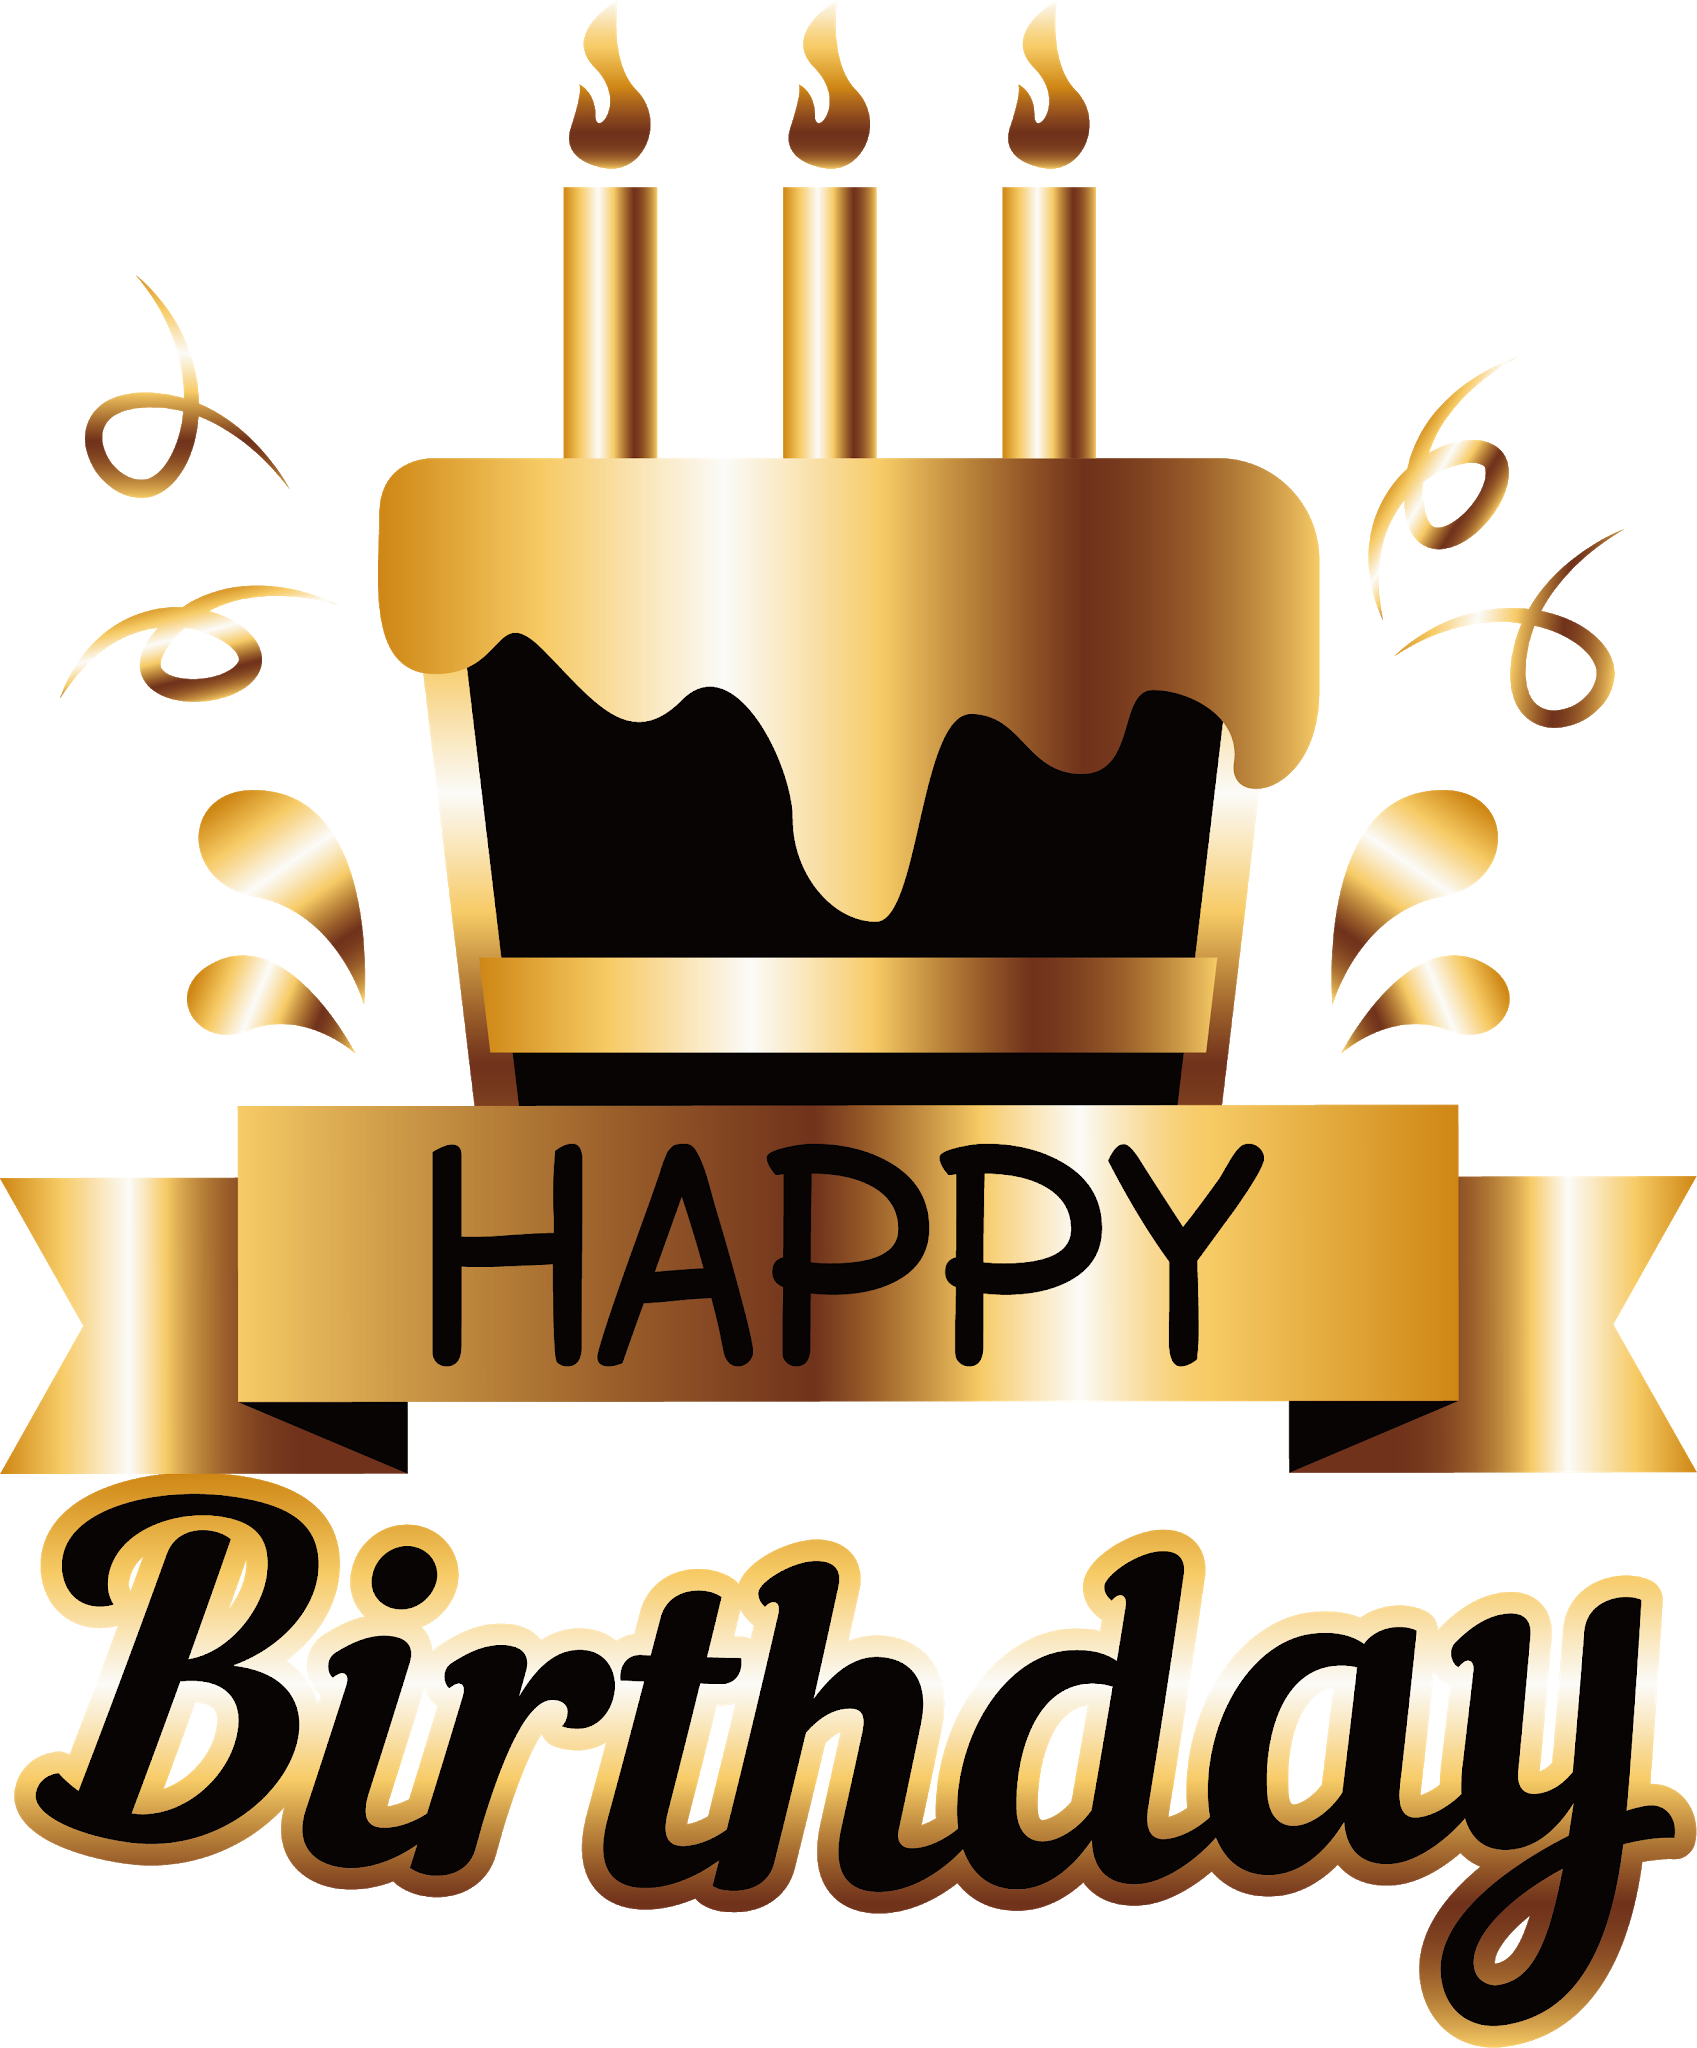 Pin by pngsector on Happy Birthday Transparent PNG image & Clipart.